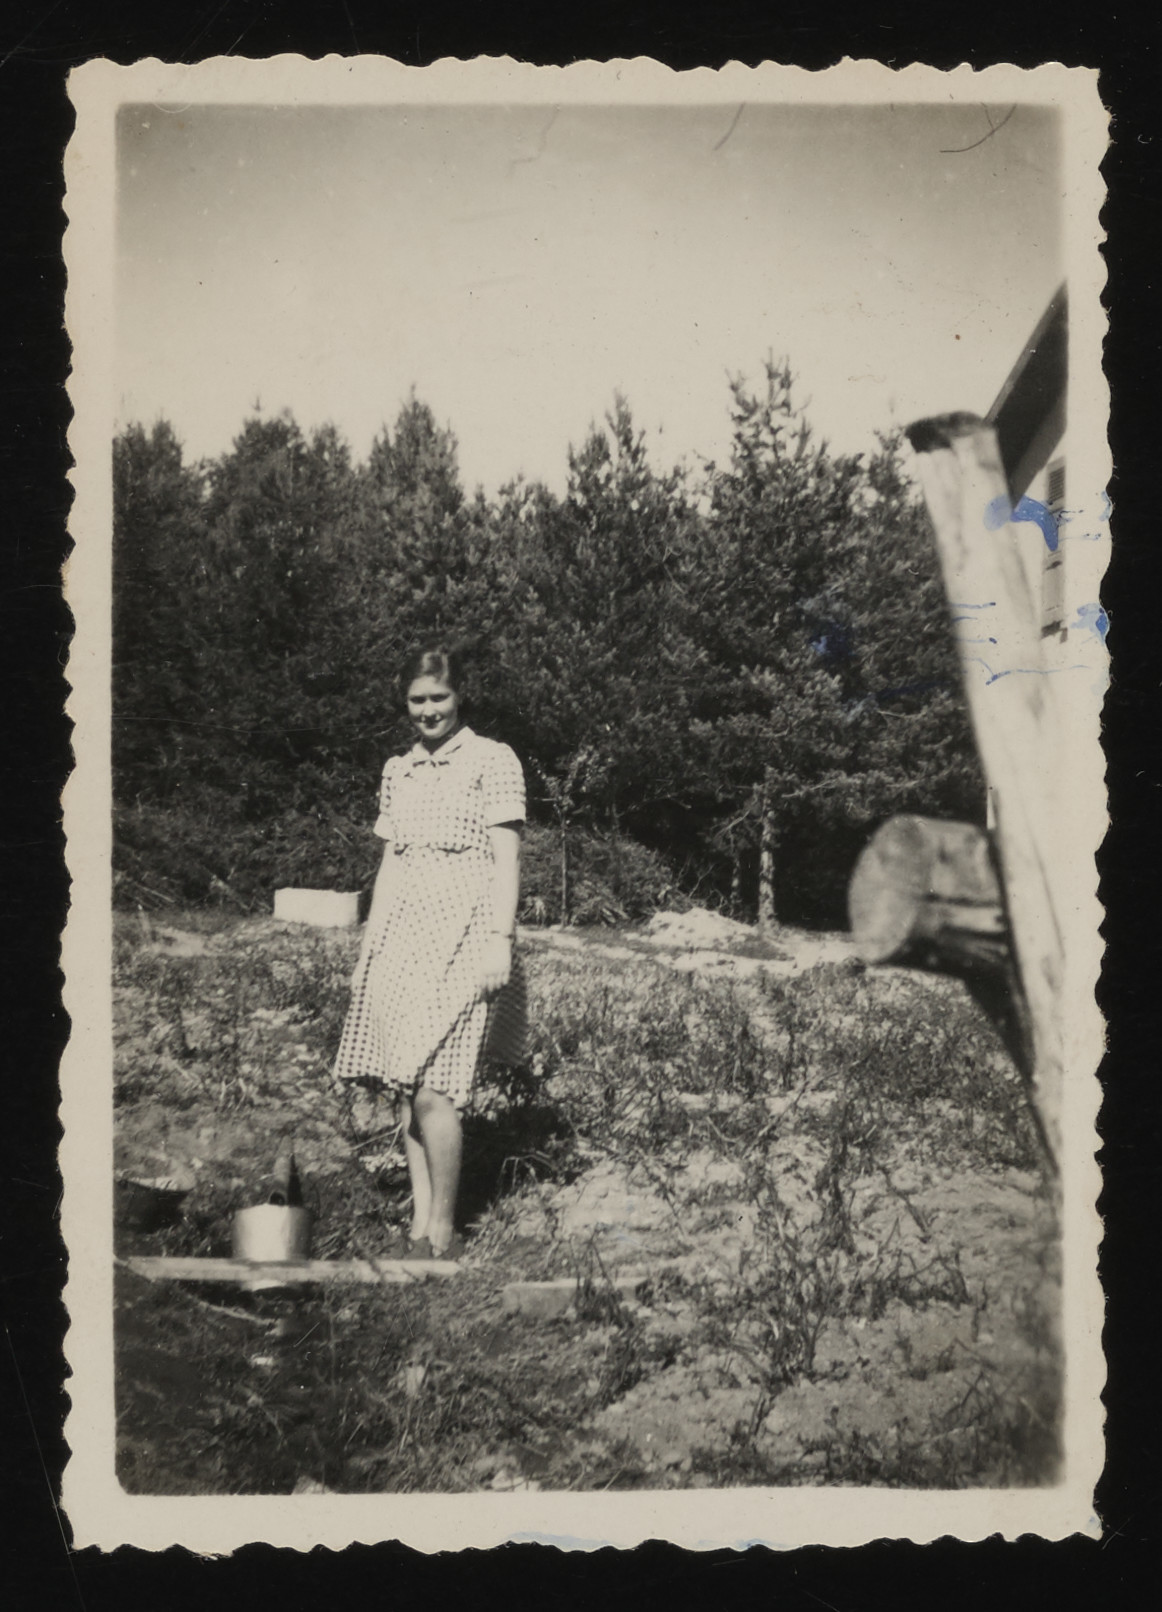 Portrait of Hanne Hirsch, a Jewish teenager hiding in Le Chambon.